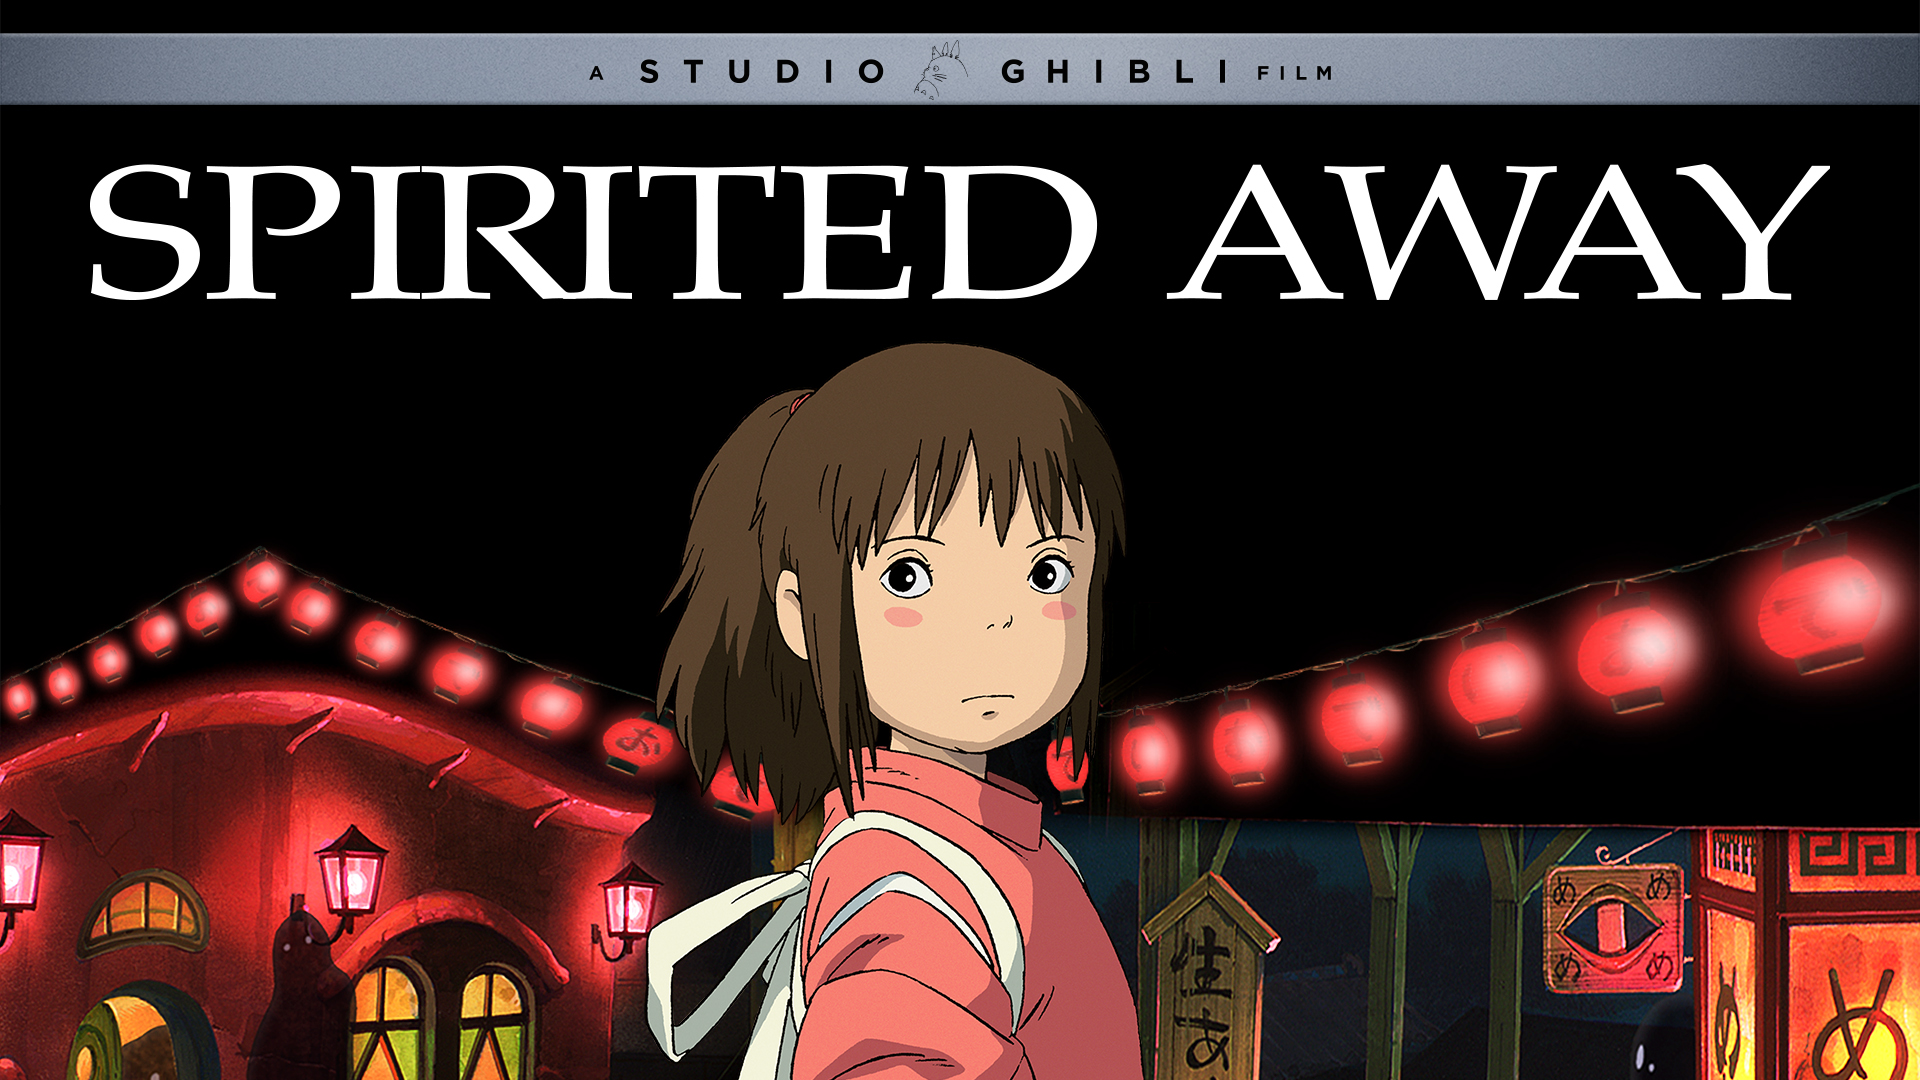 Spirited Away (Japanese Language)